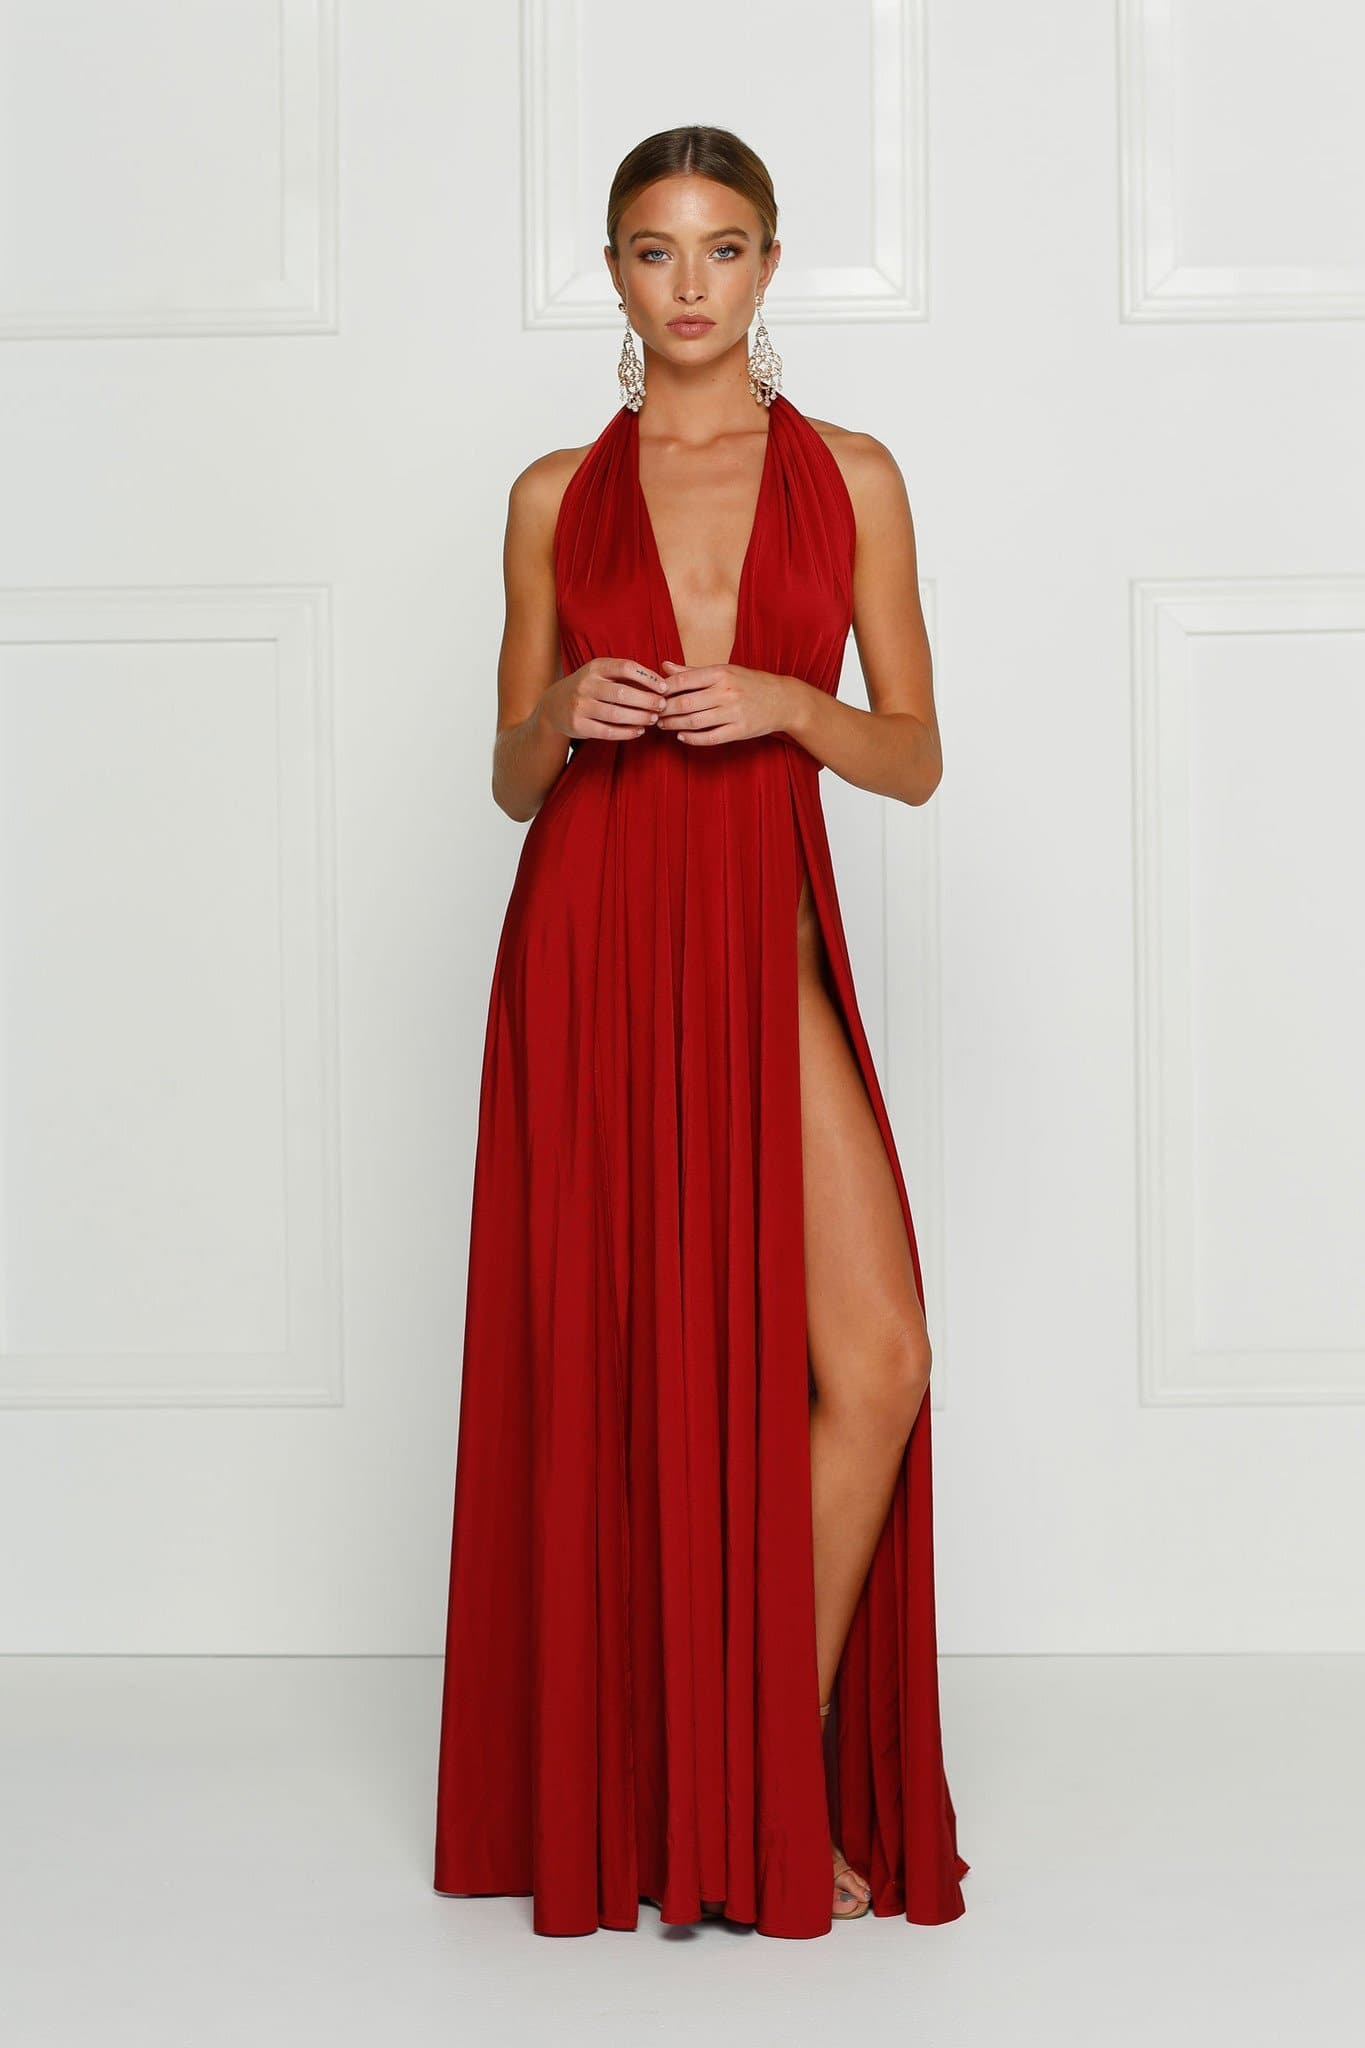 Catalina - Wine Red Grecian Style Jersey Gown with Low Back & Slits